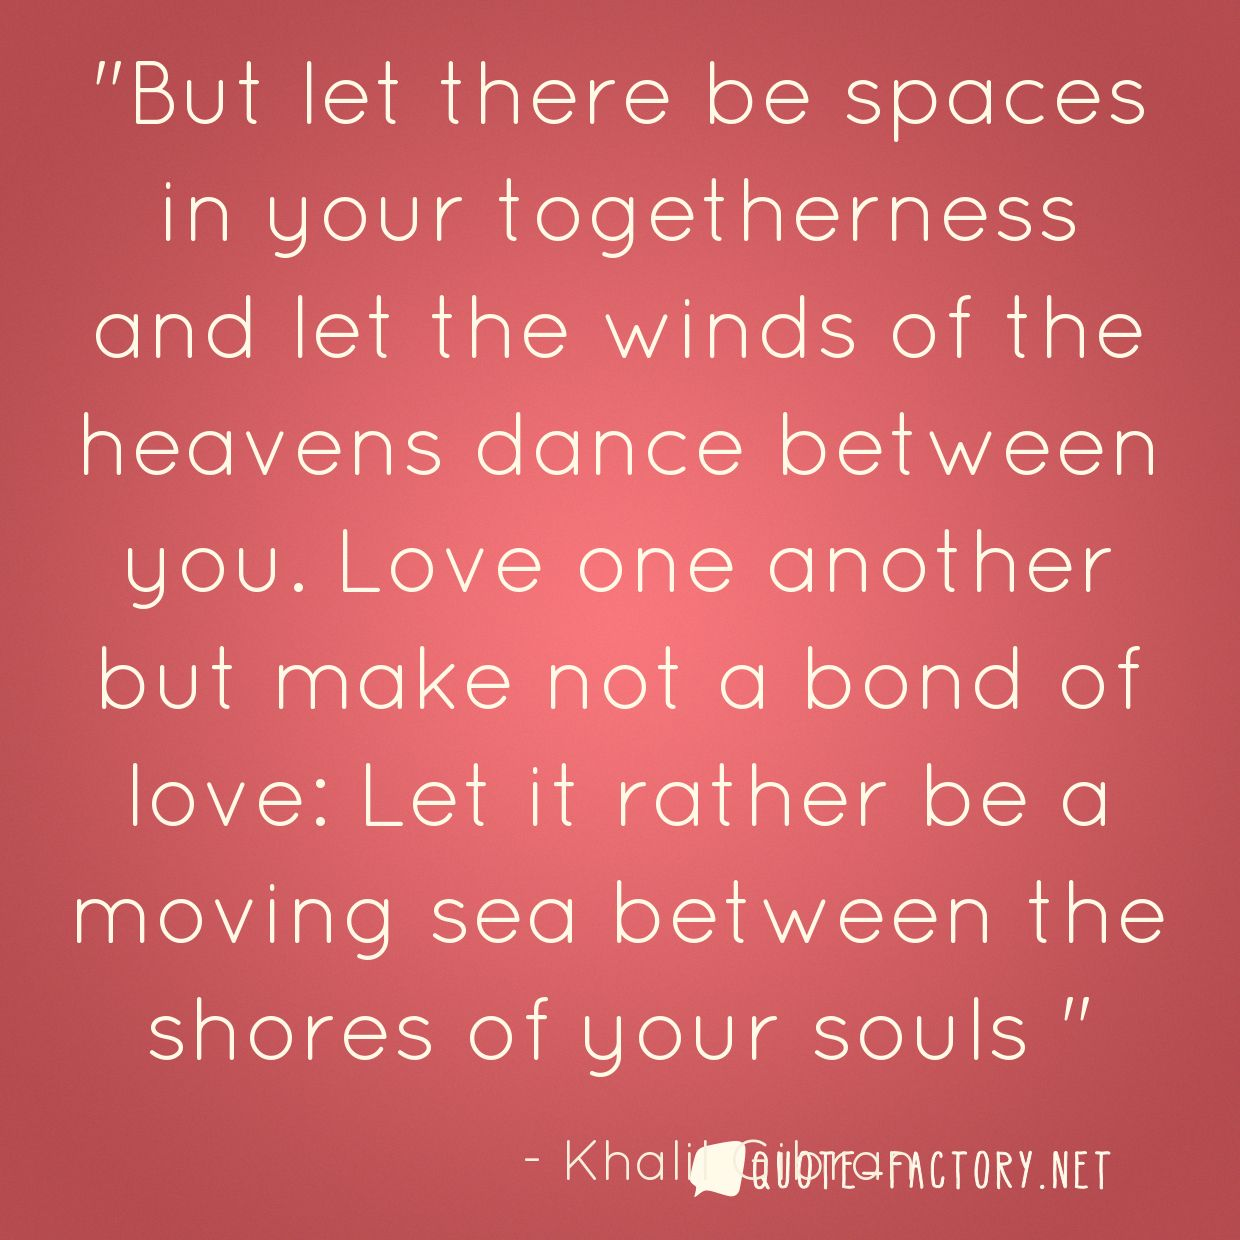 But let there be spaces in your togetherness and let the winds of the heavens dance between you. Love one another but make not a bond of love: Let it rather be a moving sea between the shores of your souls